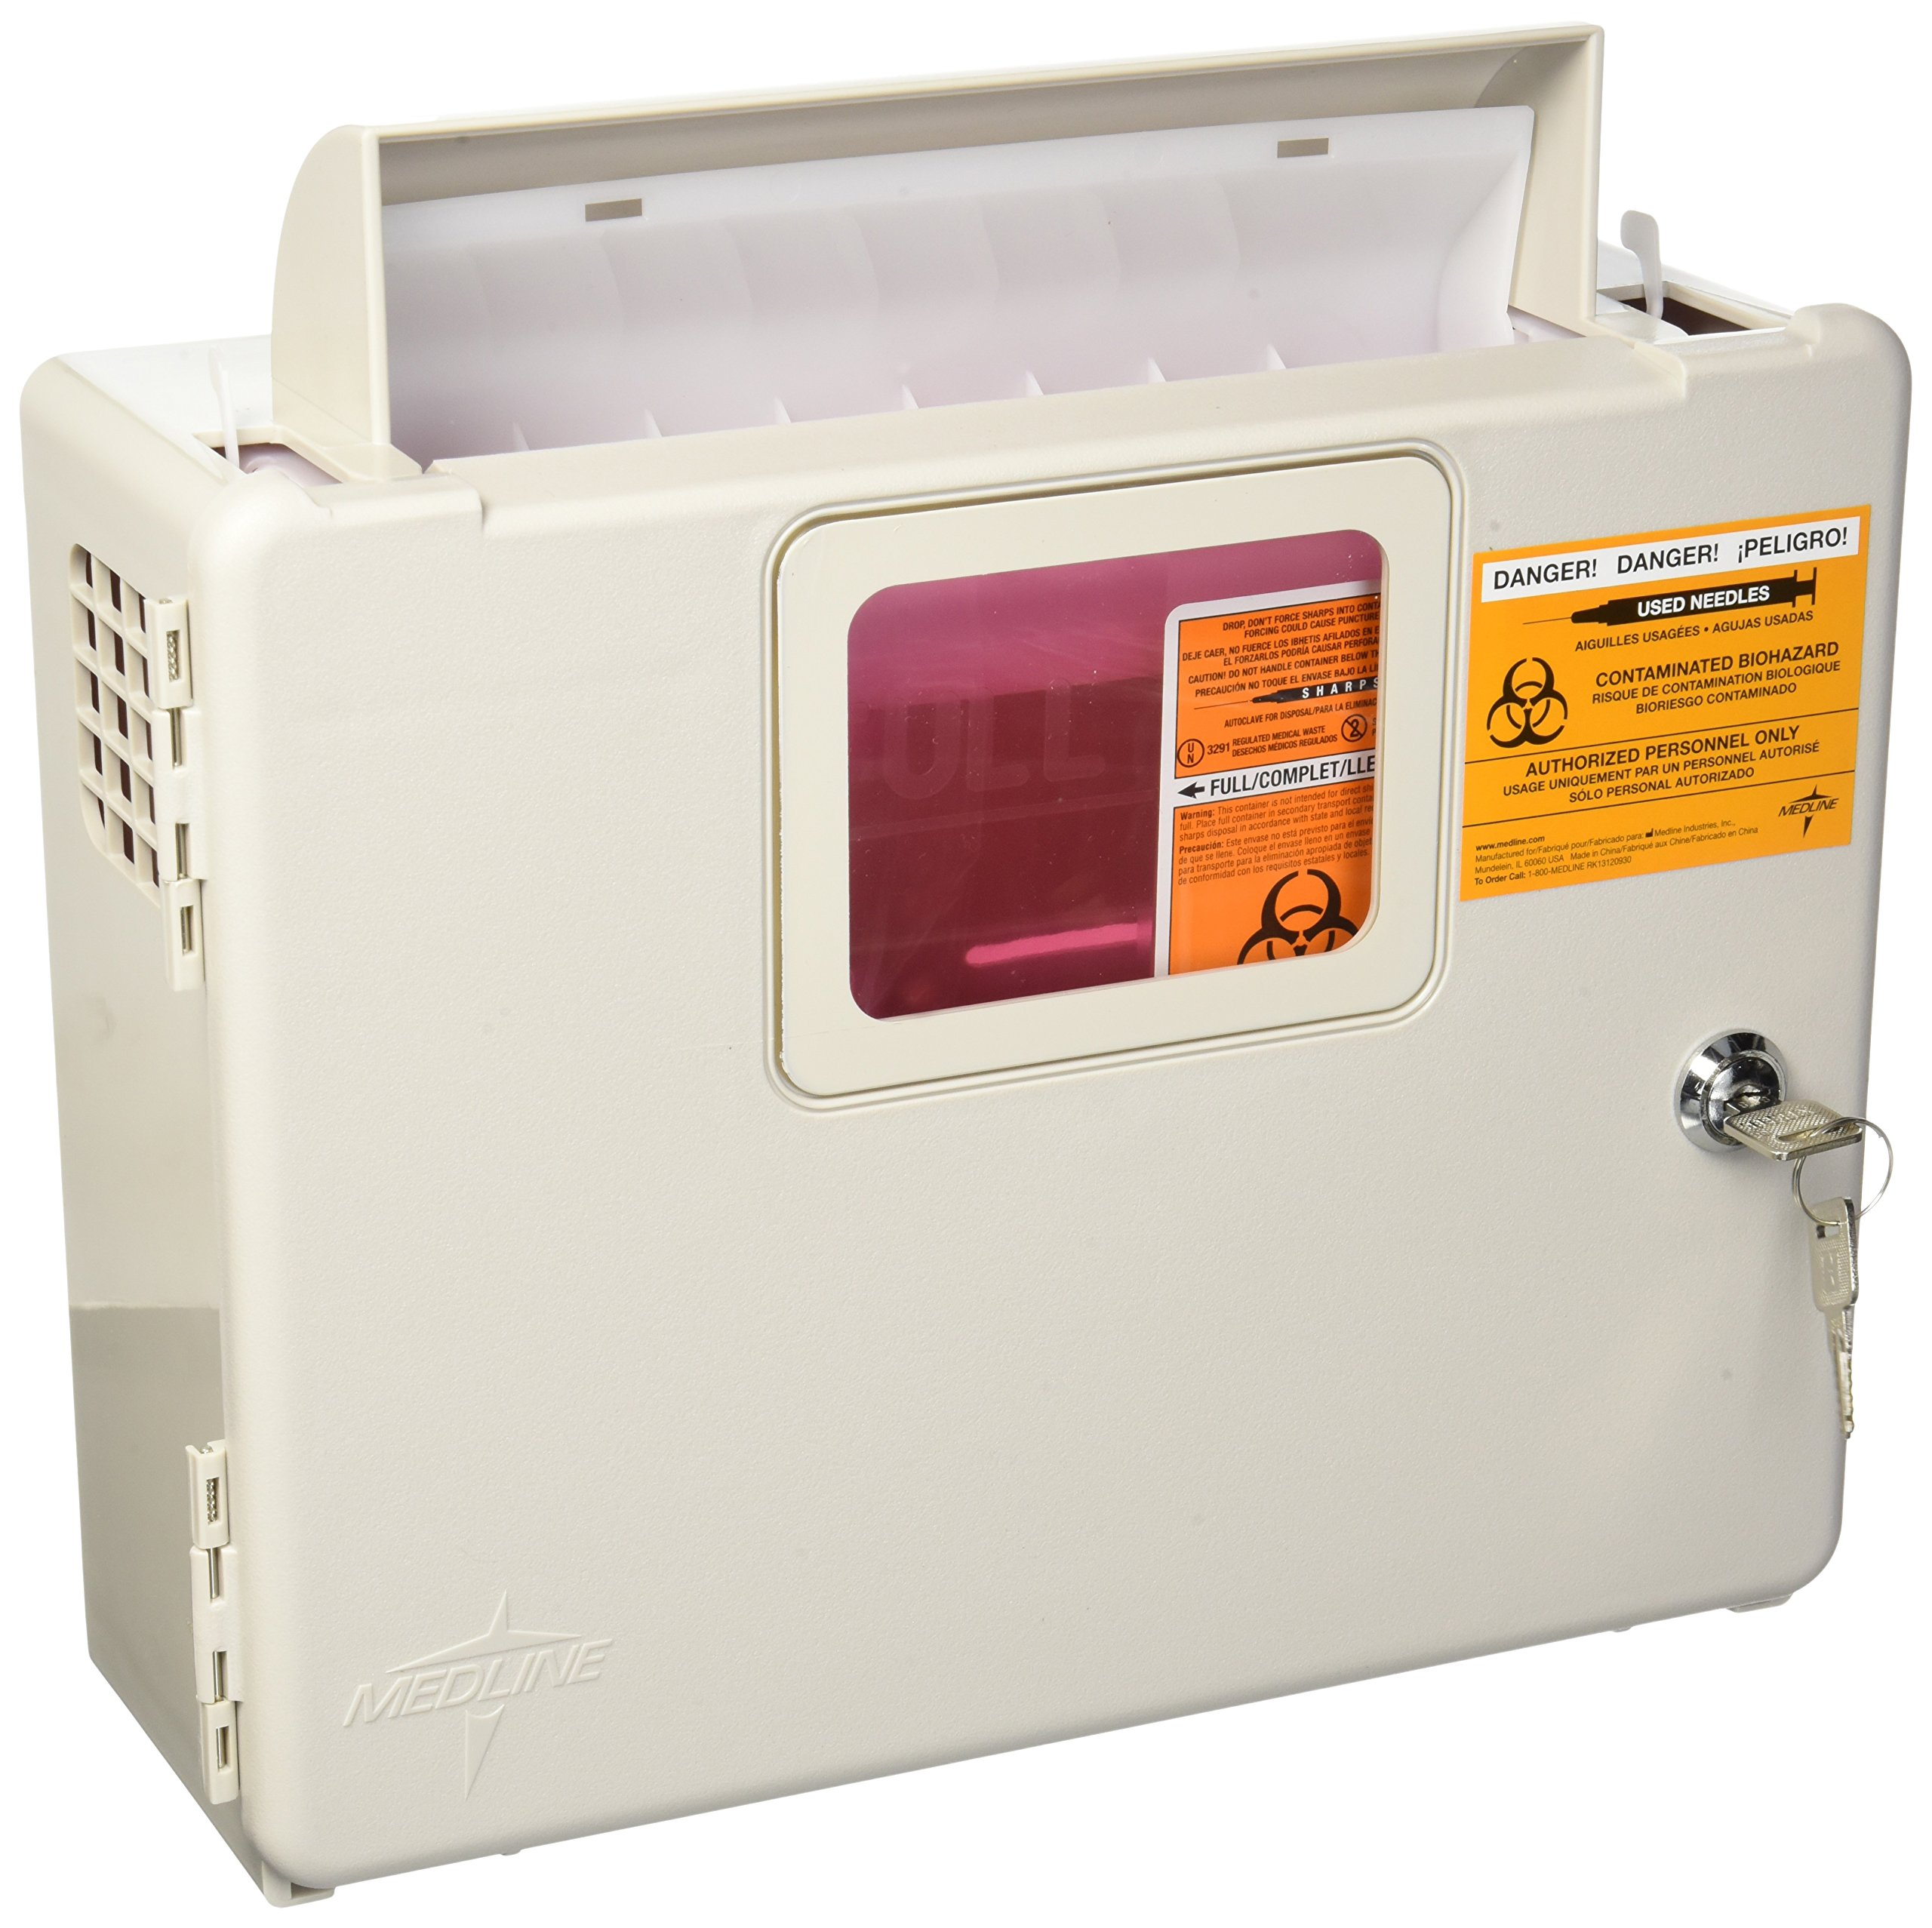 Kendall Wall Cabinet F/5Qt Sharps - Model 85161h by Kendall/Covidien